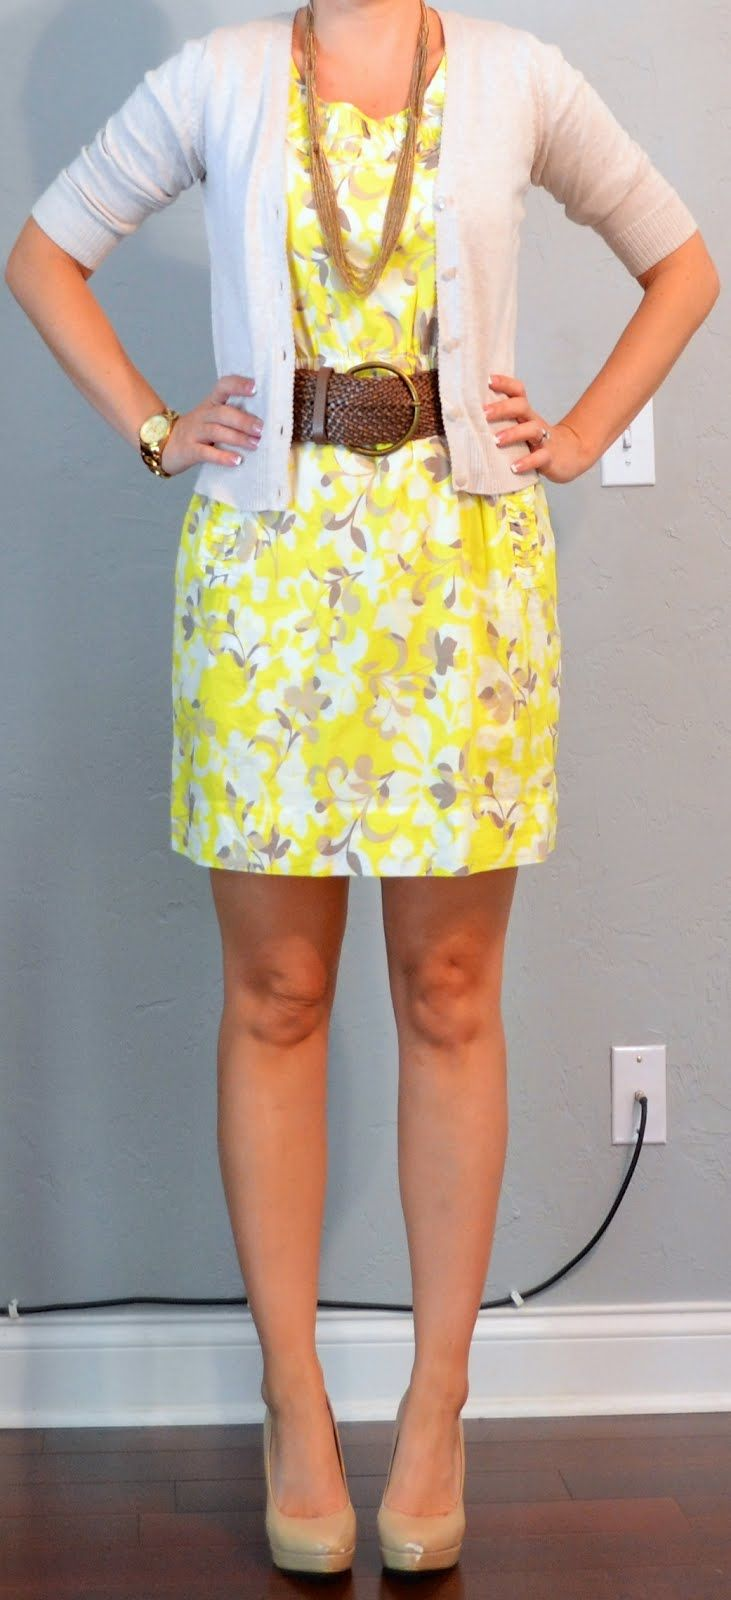 Outfit Posts: outfit post: yellow dress, tan cardian, wide belt. Love the belt on this outfit!